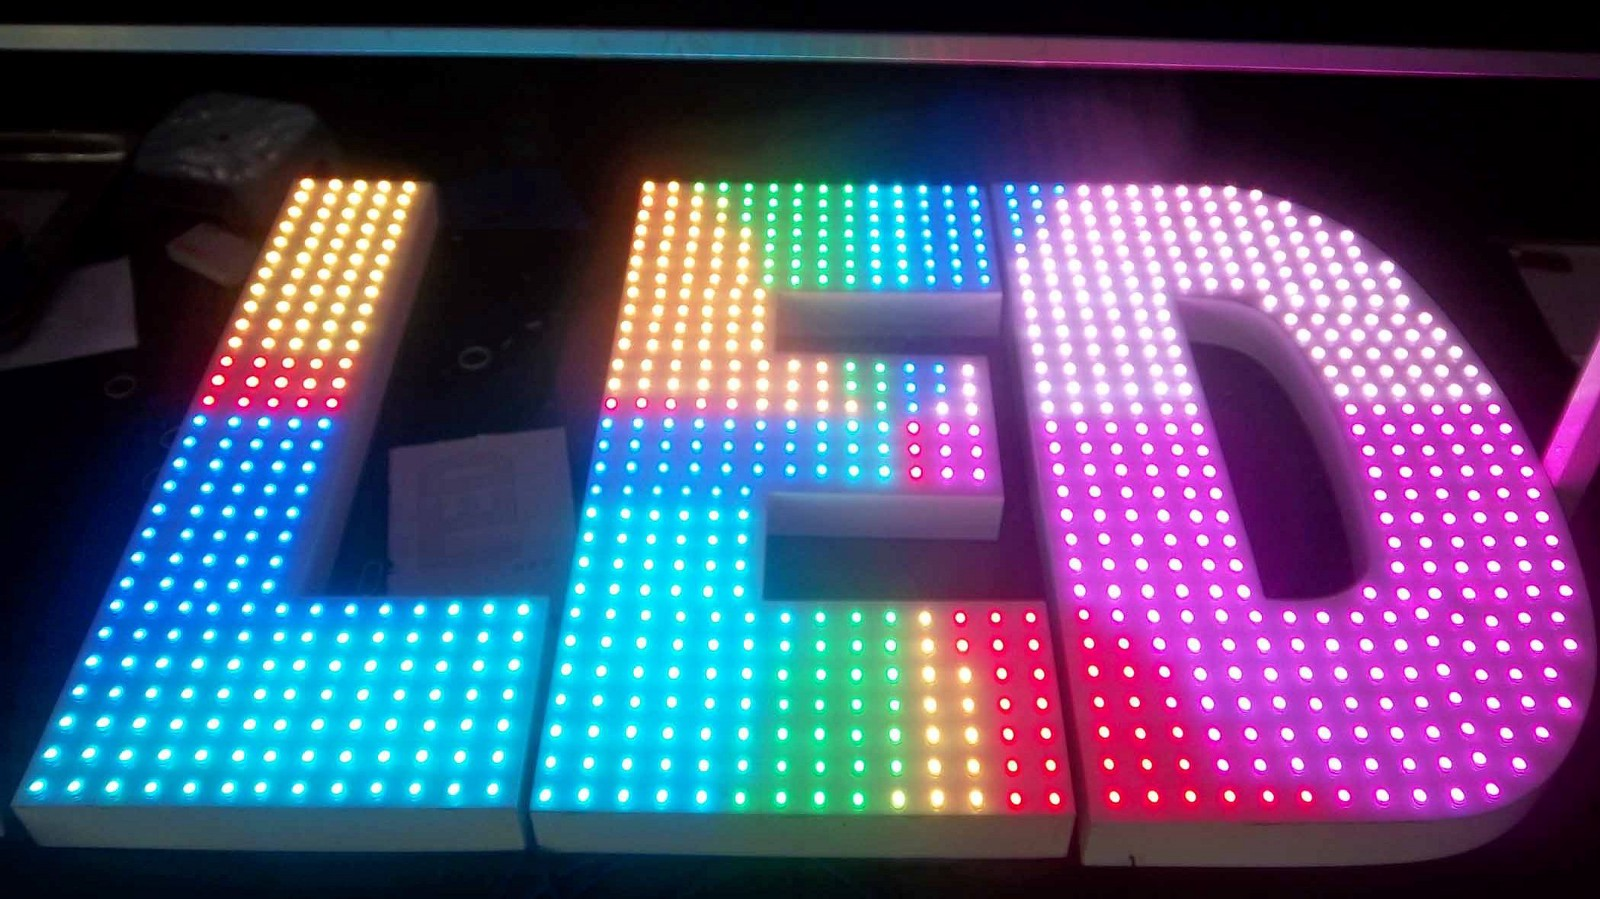 led signs are both an energy and cost efficient way to advertise